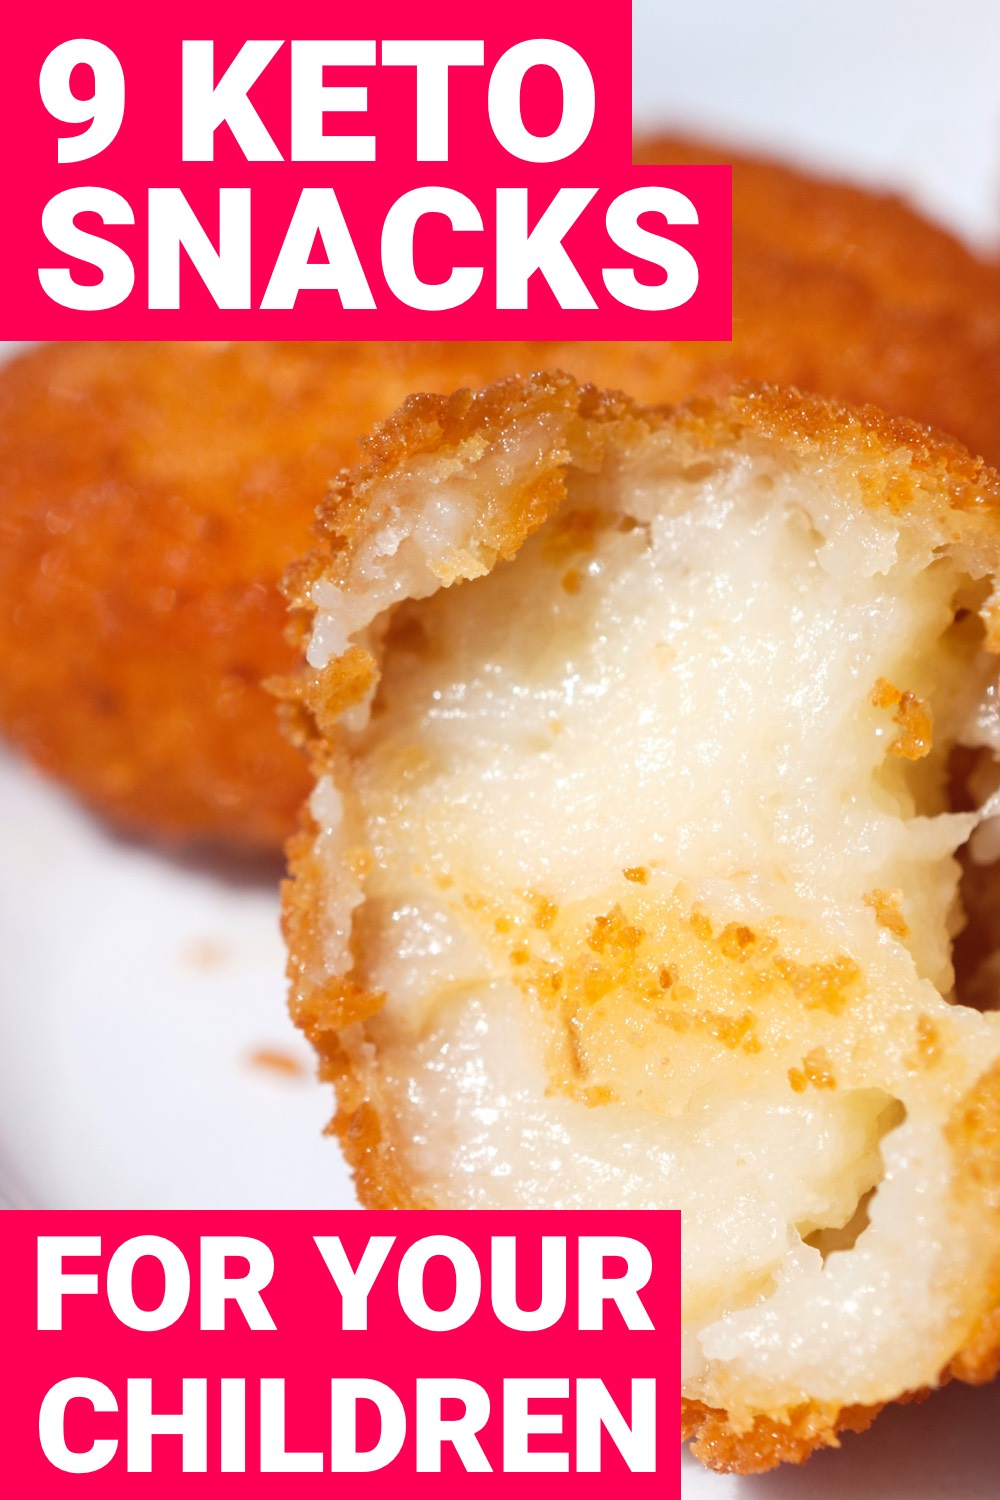 Making your kids eat healthy foods can be difficult at times. These 9 keto snacks make that task much easier.